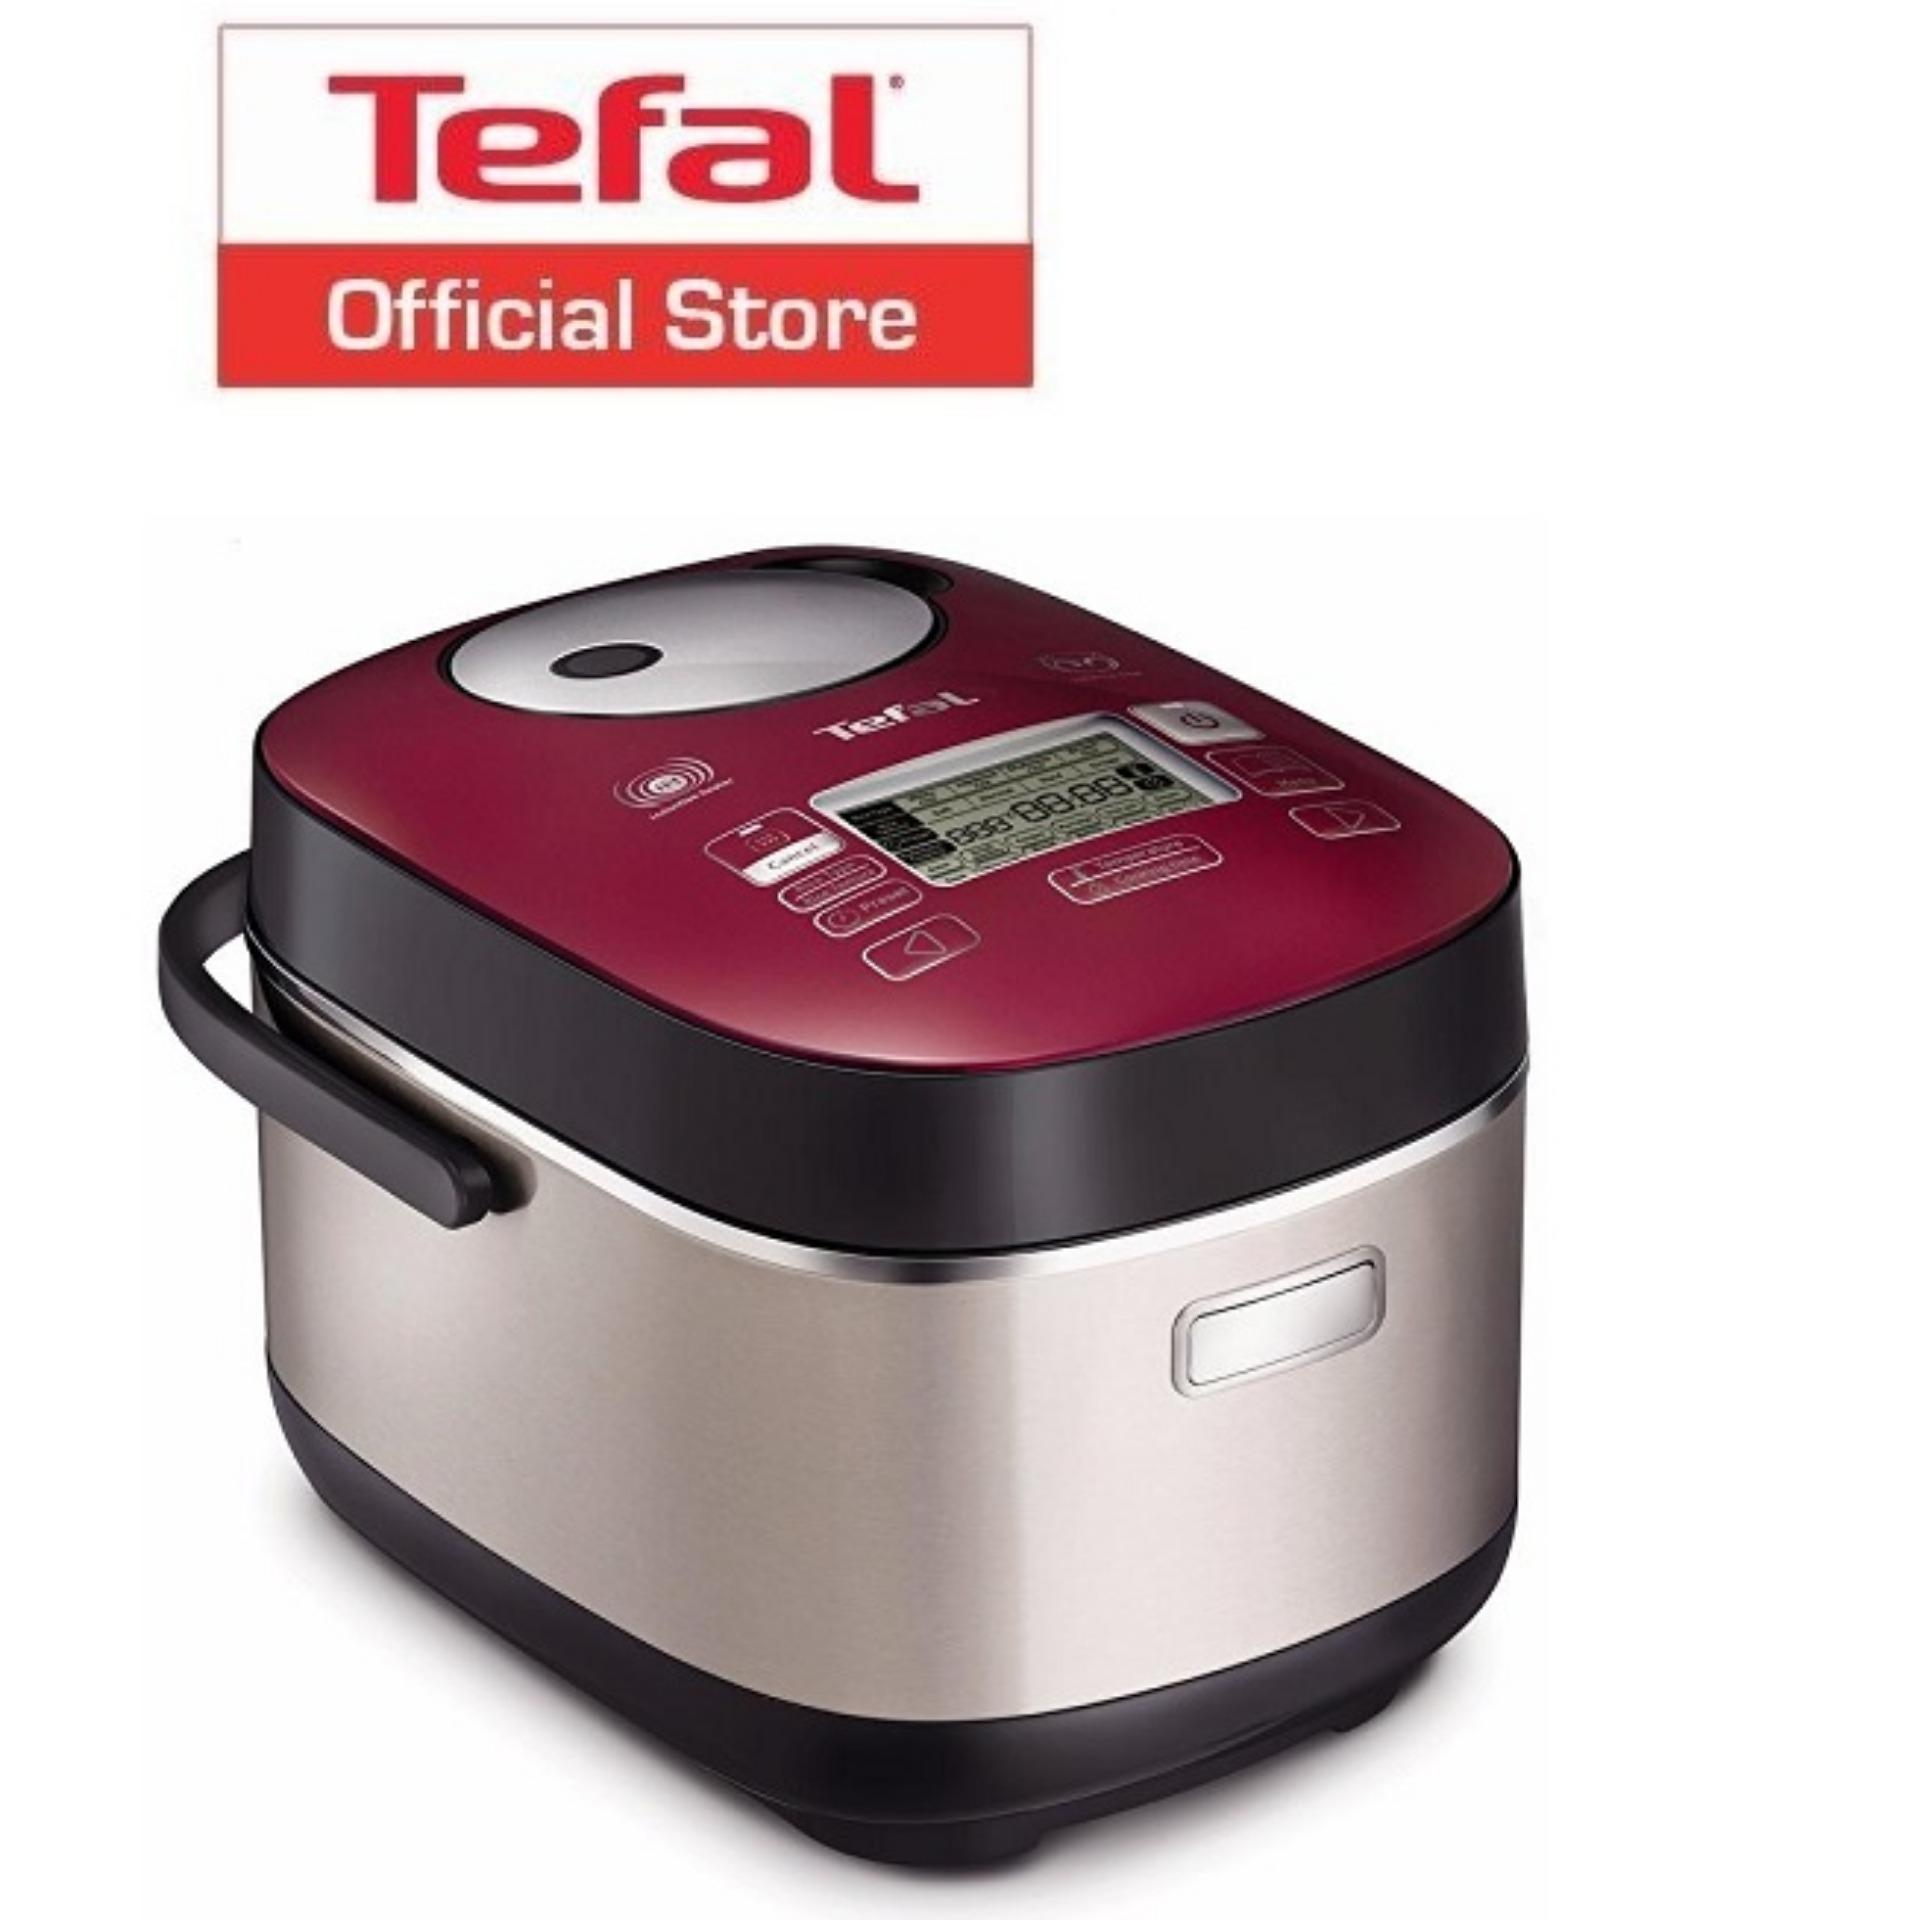 Tefal Pro 48 Program Fuzzy Logic 3 D Induction Spherical Pot Rice Cooker 1 8L Rk8055 Price